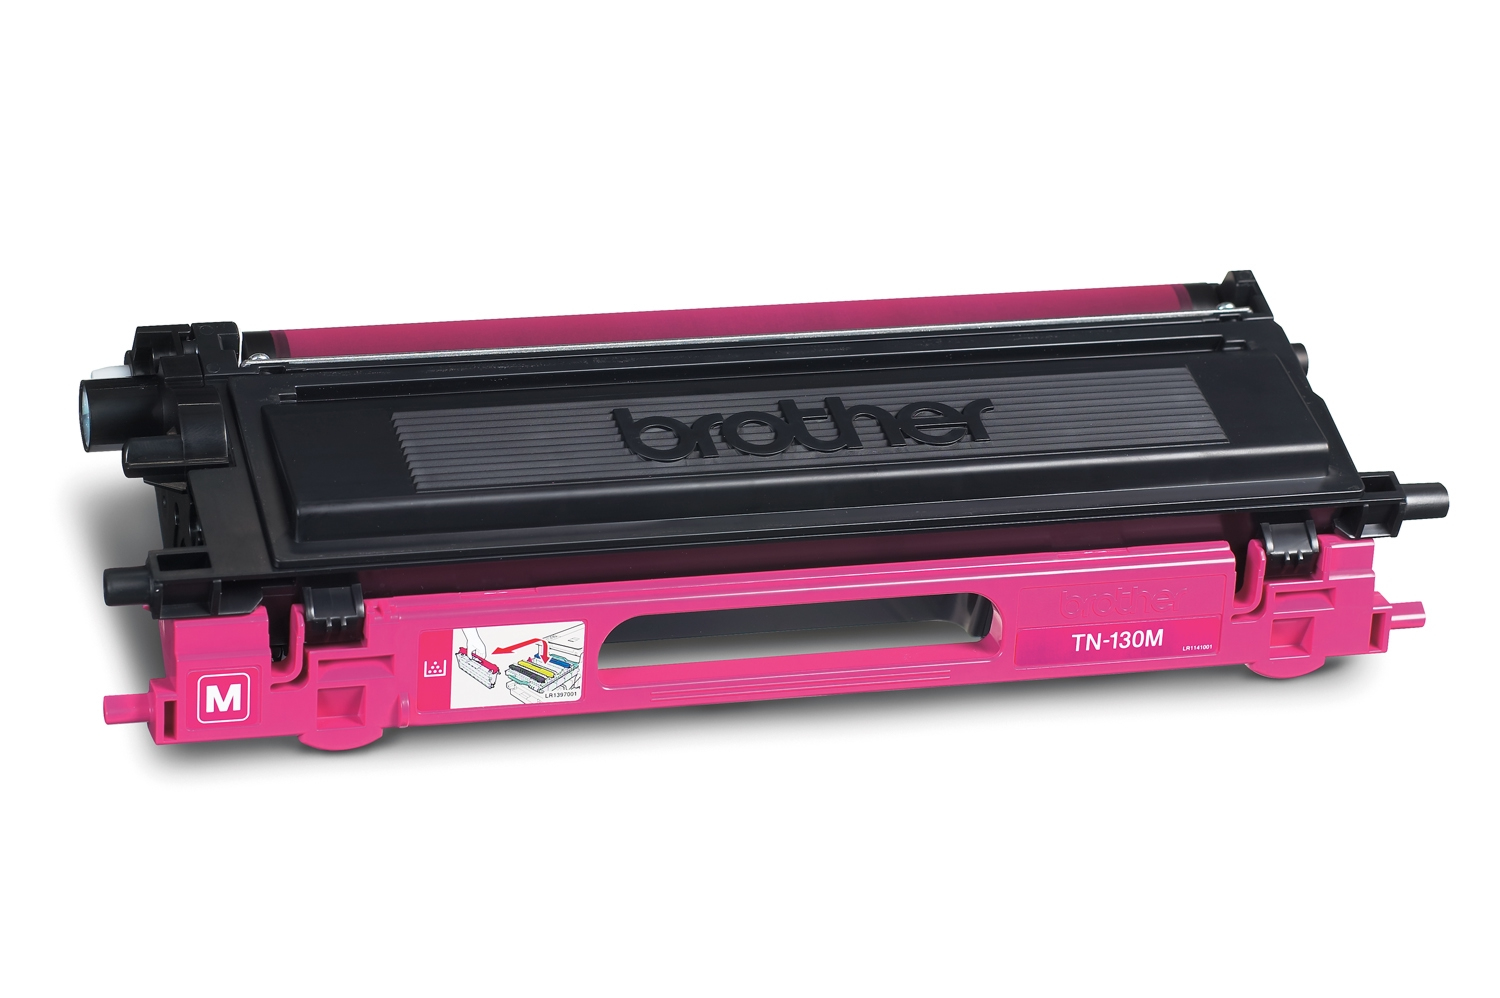 Remanufactured Brother TN130M Toner Cartridge Magenta 4K TN130M - rem01